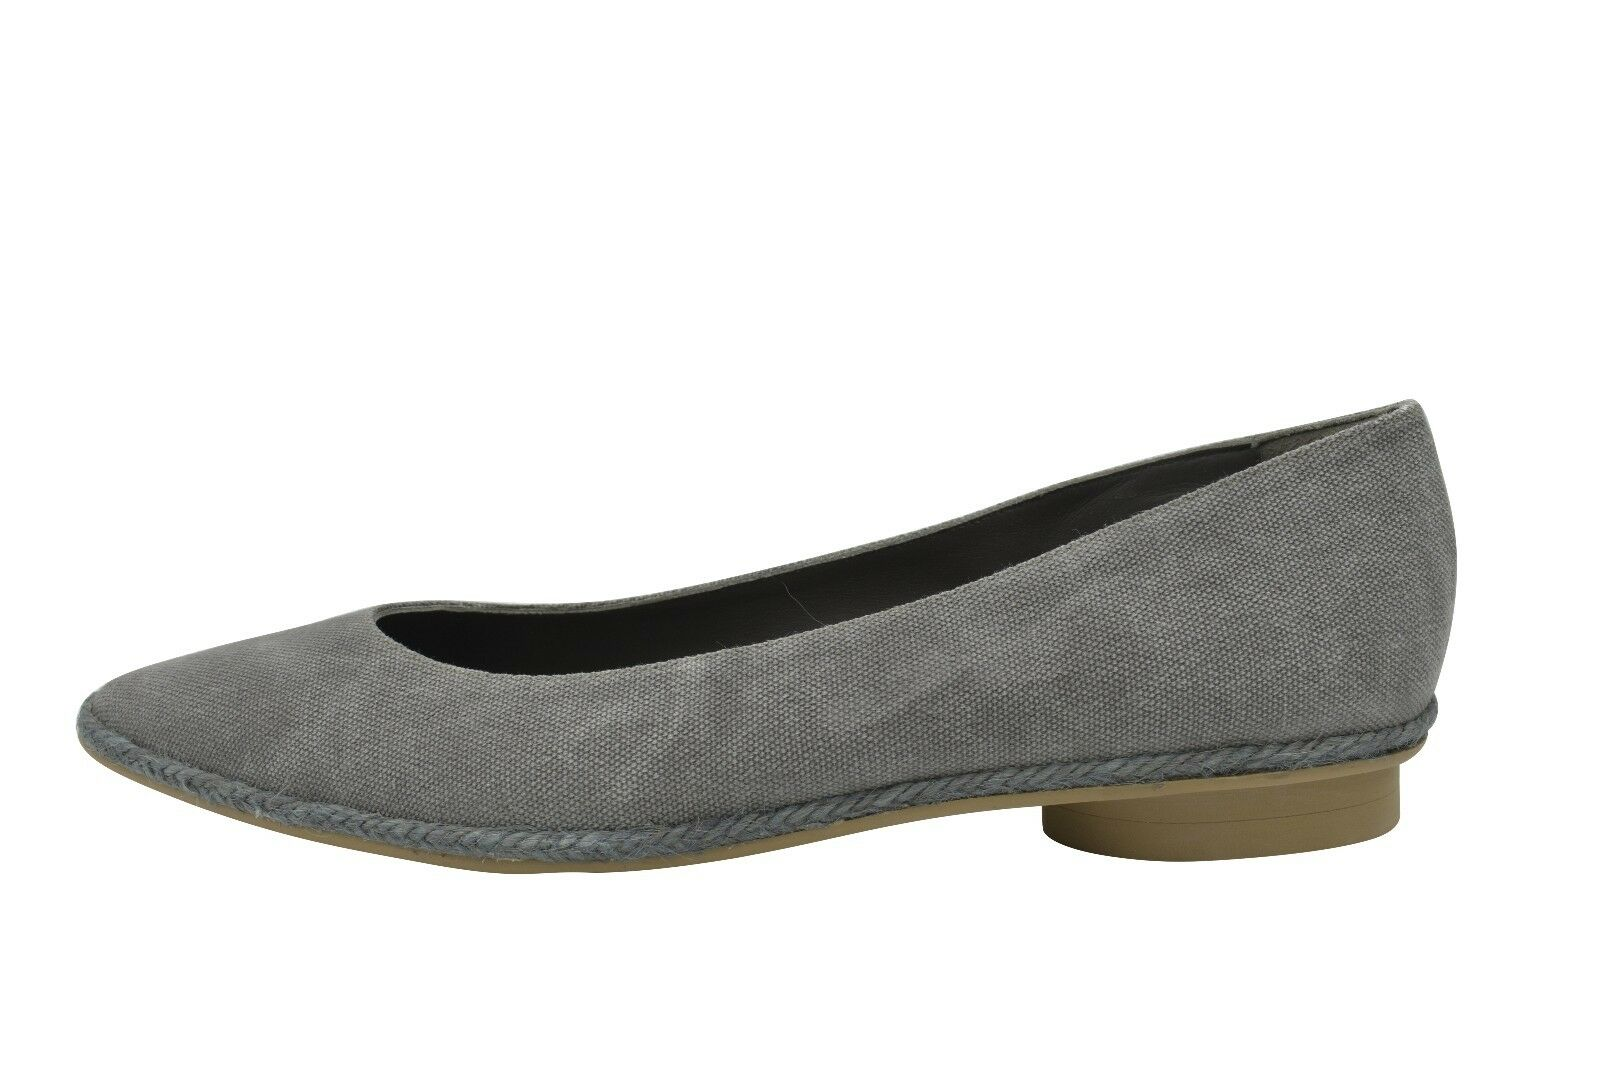 Castaner Women's Gray Pointy Canvas Flats Shoes 41